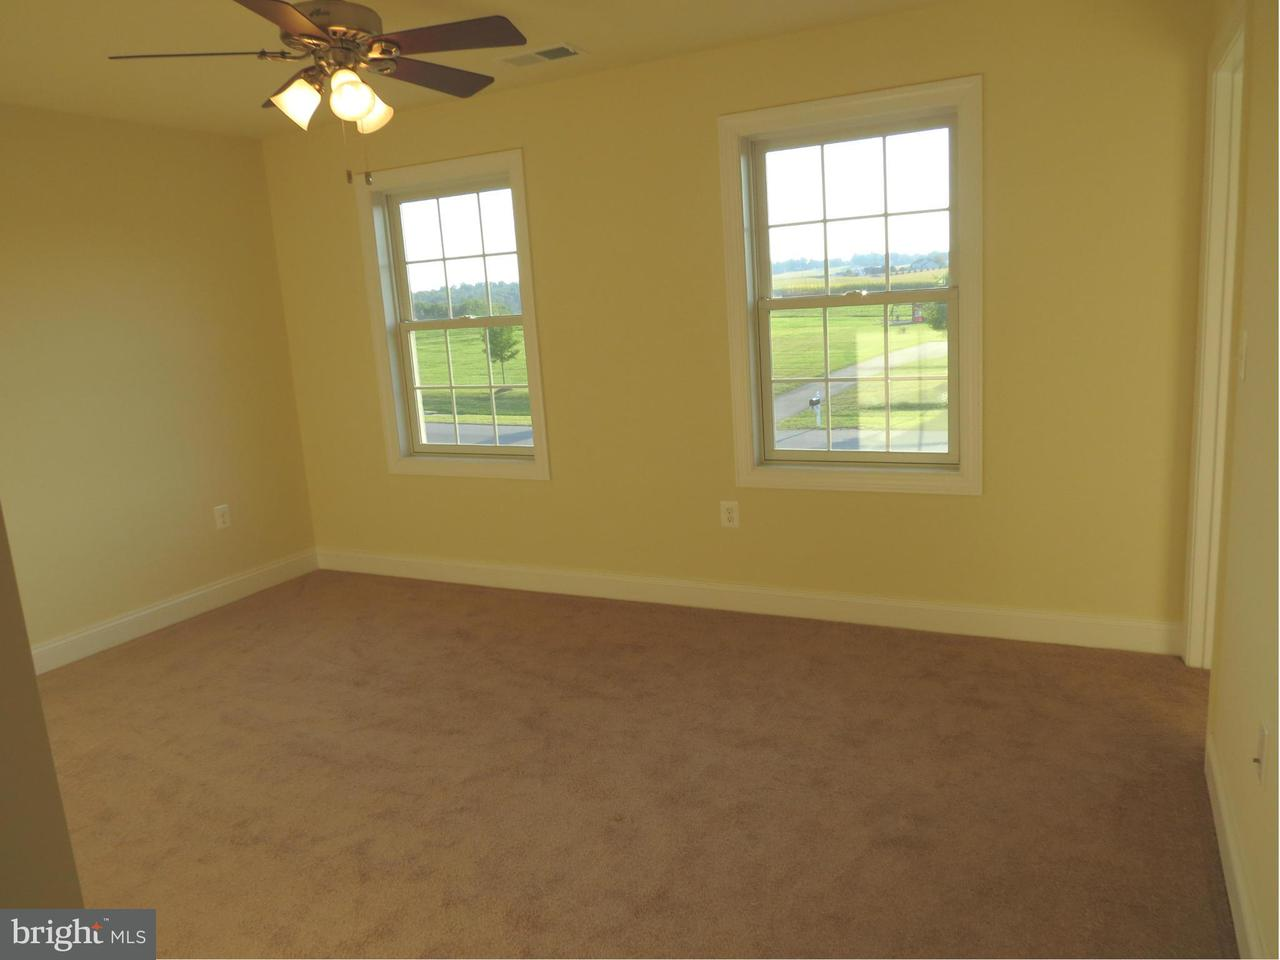 Additional photo for property listing at 1590 Quiet Meadow Way 1590 Quiet Meadow Way Hampstead, メリーランド 21074 アメリカ合衆国